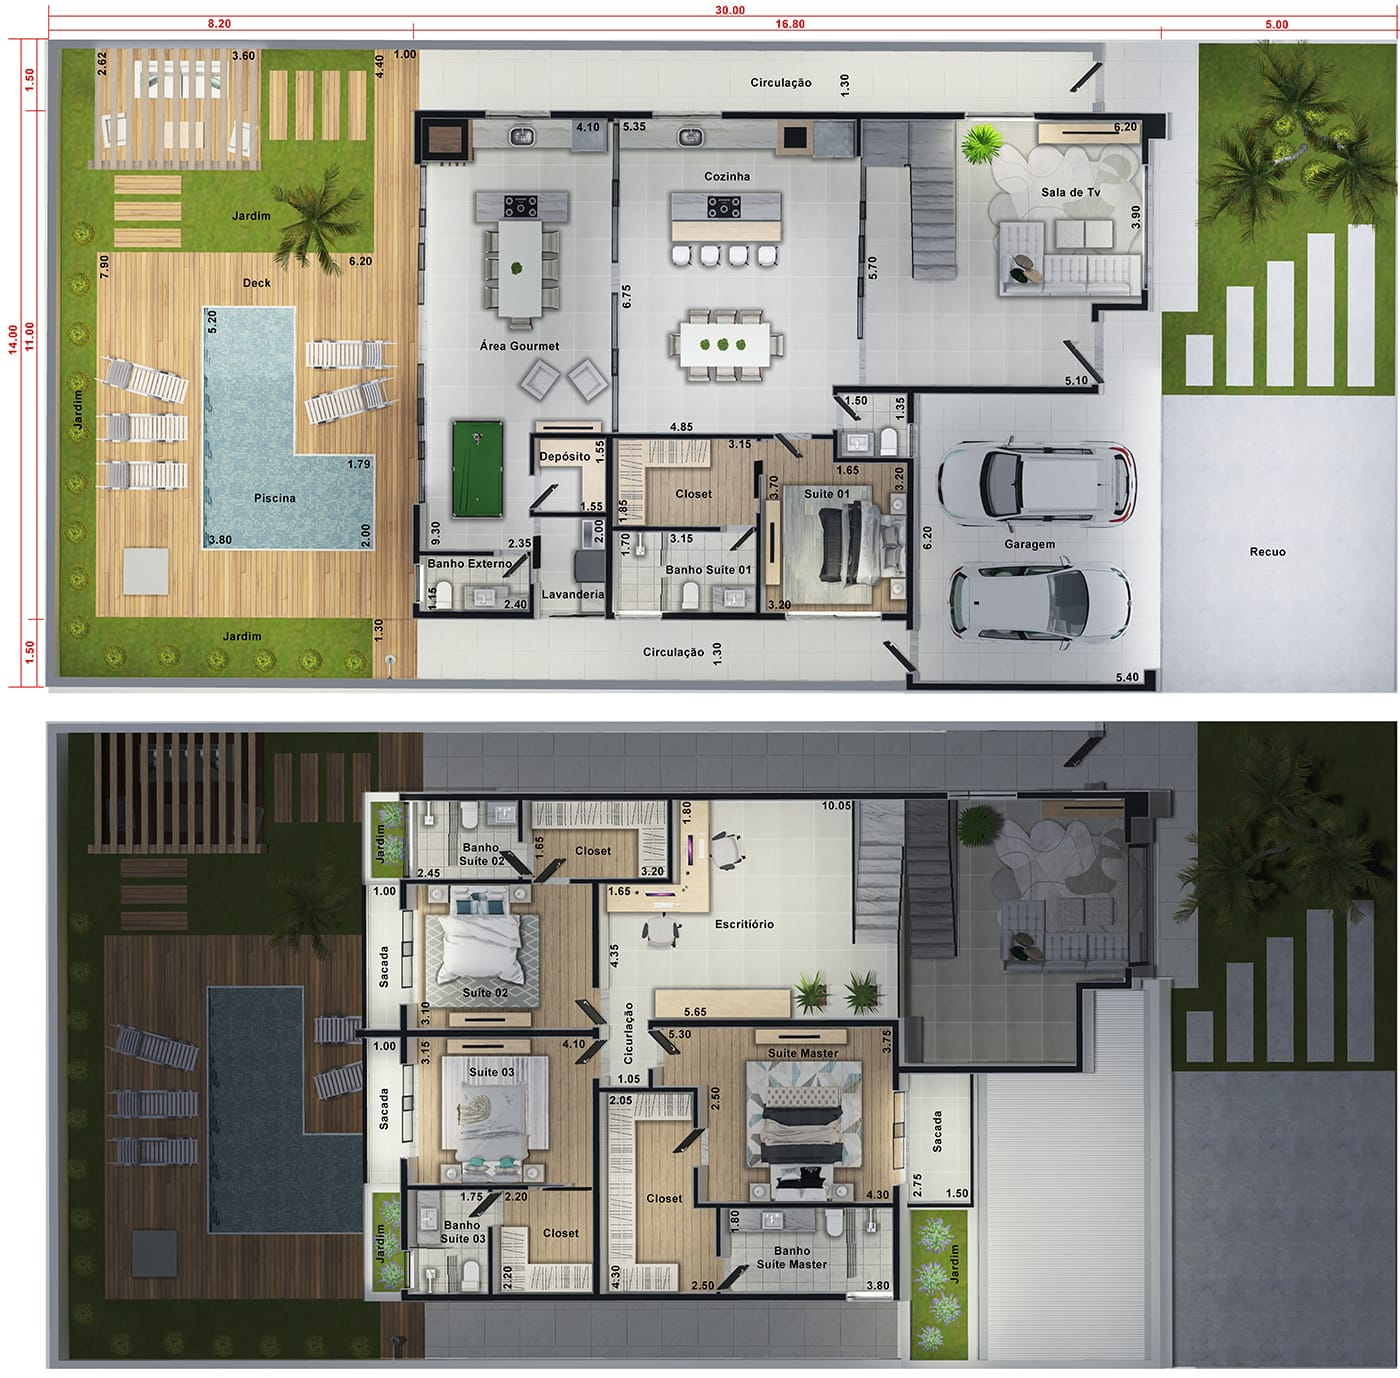 High standard townhouse with 4 suites14x30